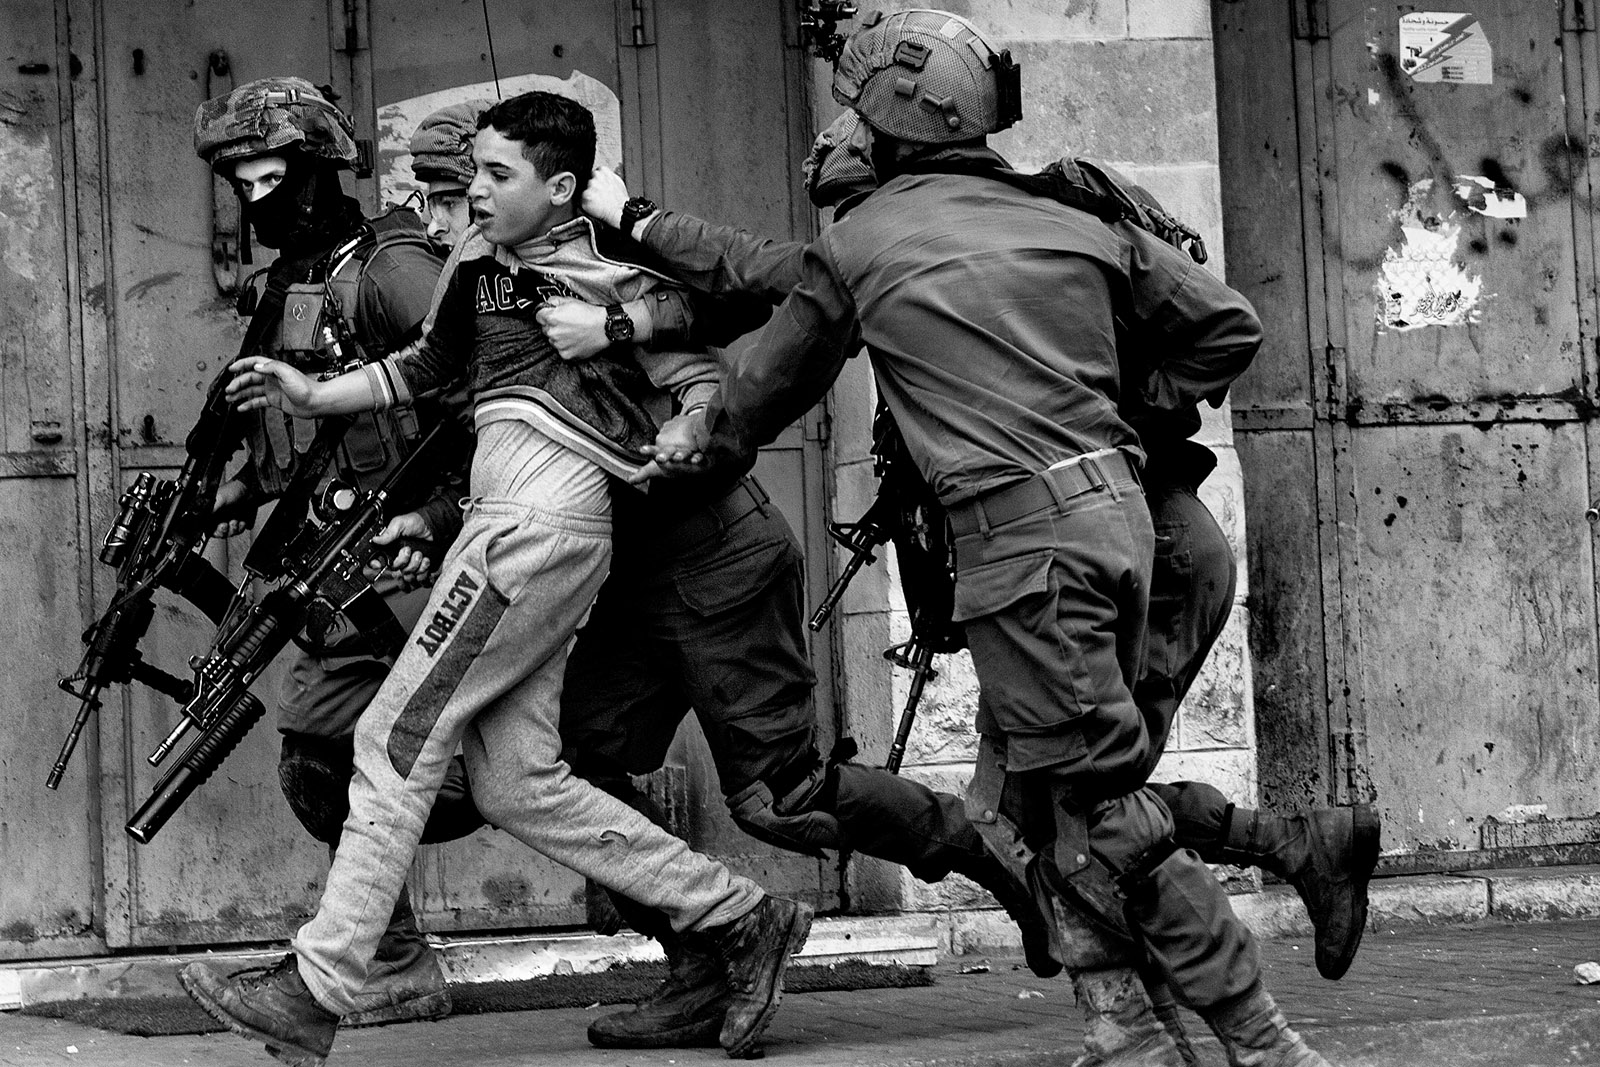 Israeli soldiers detaining a Palestinian during clashes at a protest, Hebron, West Bank, February 2018